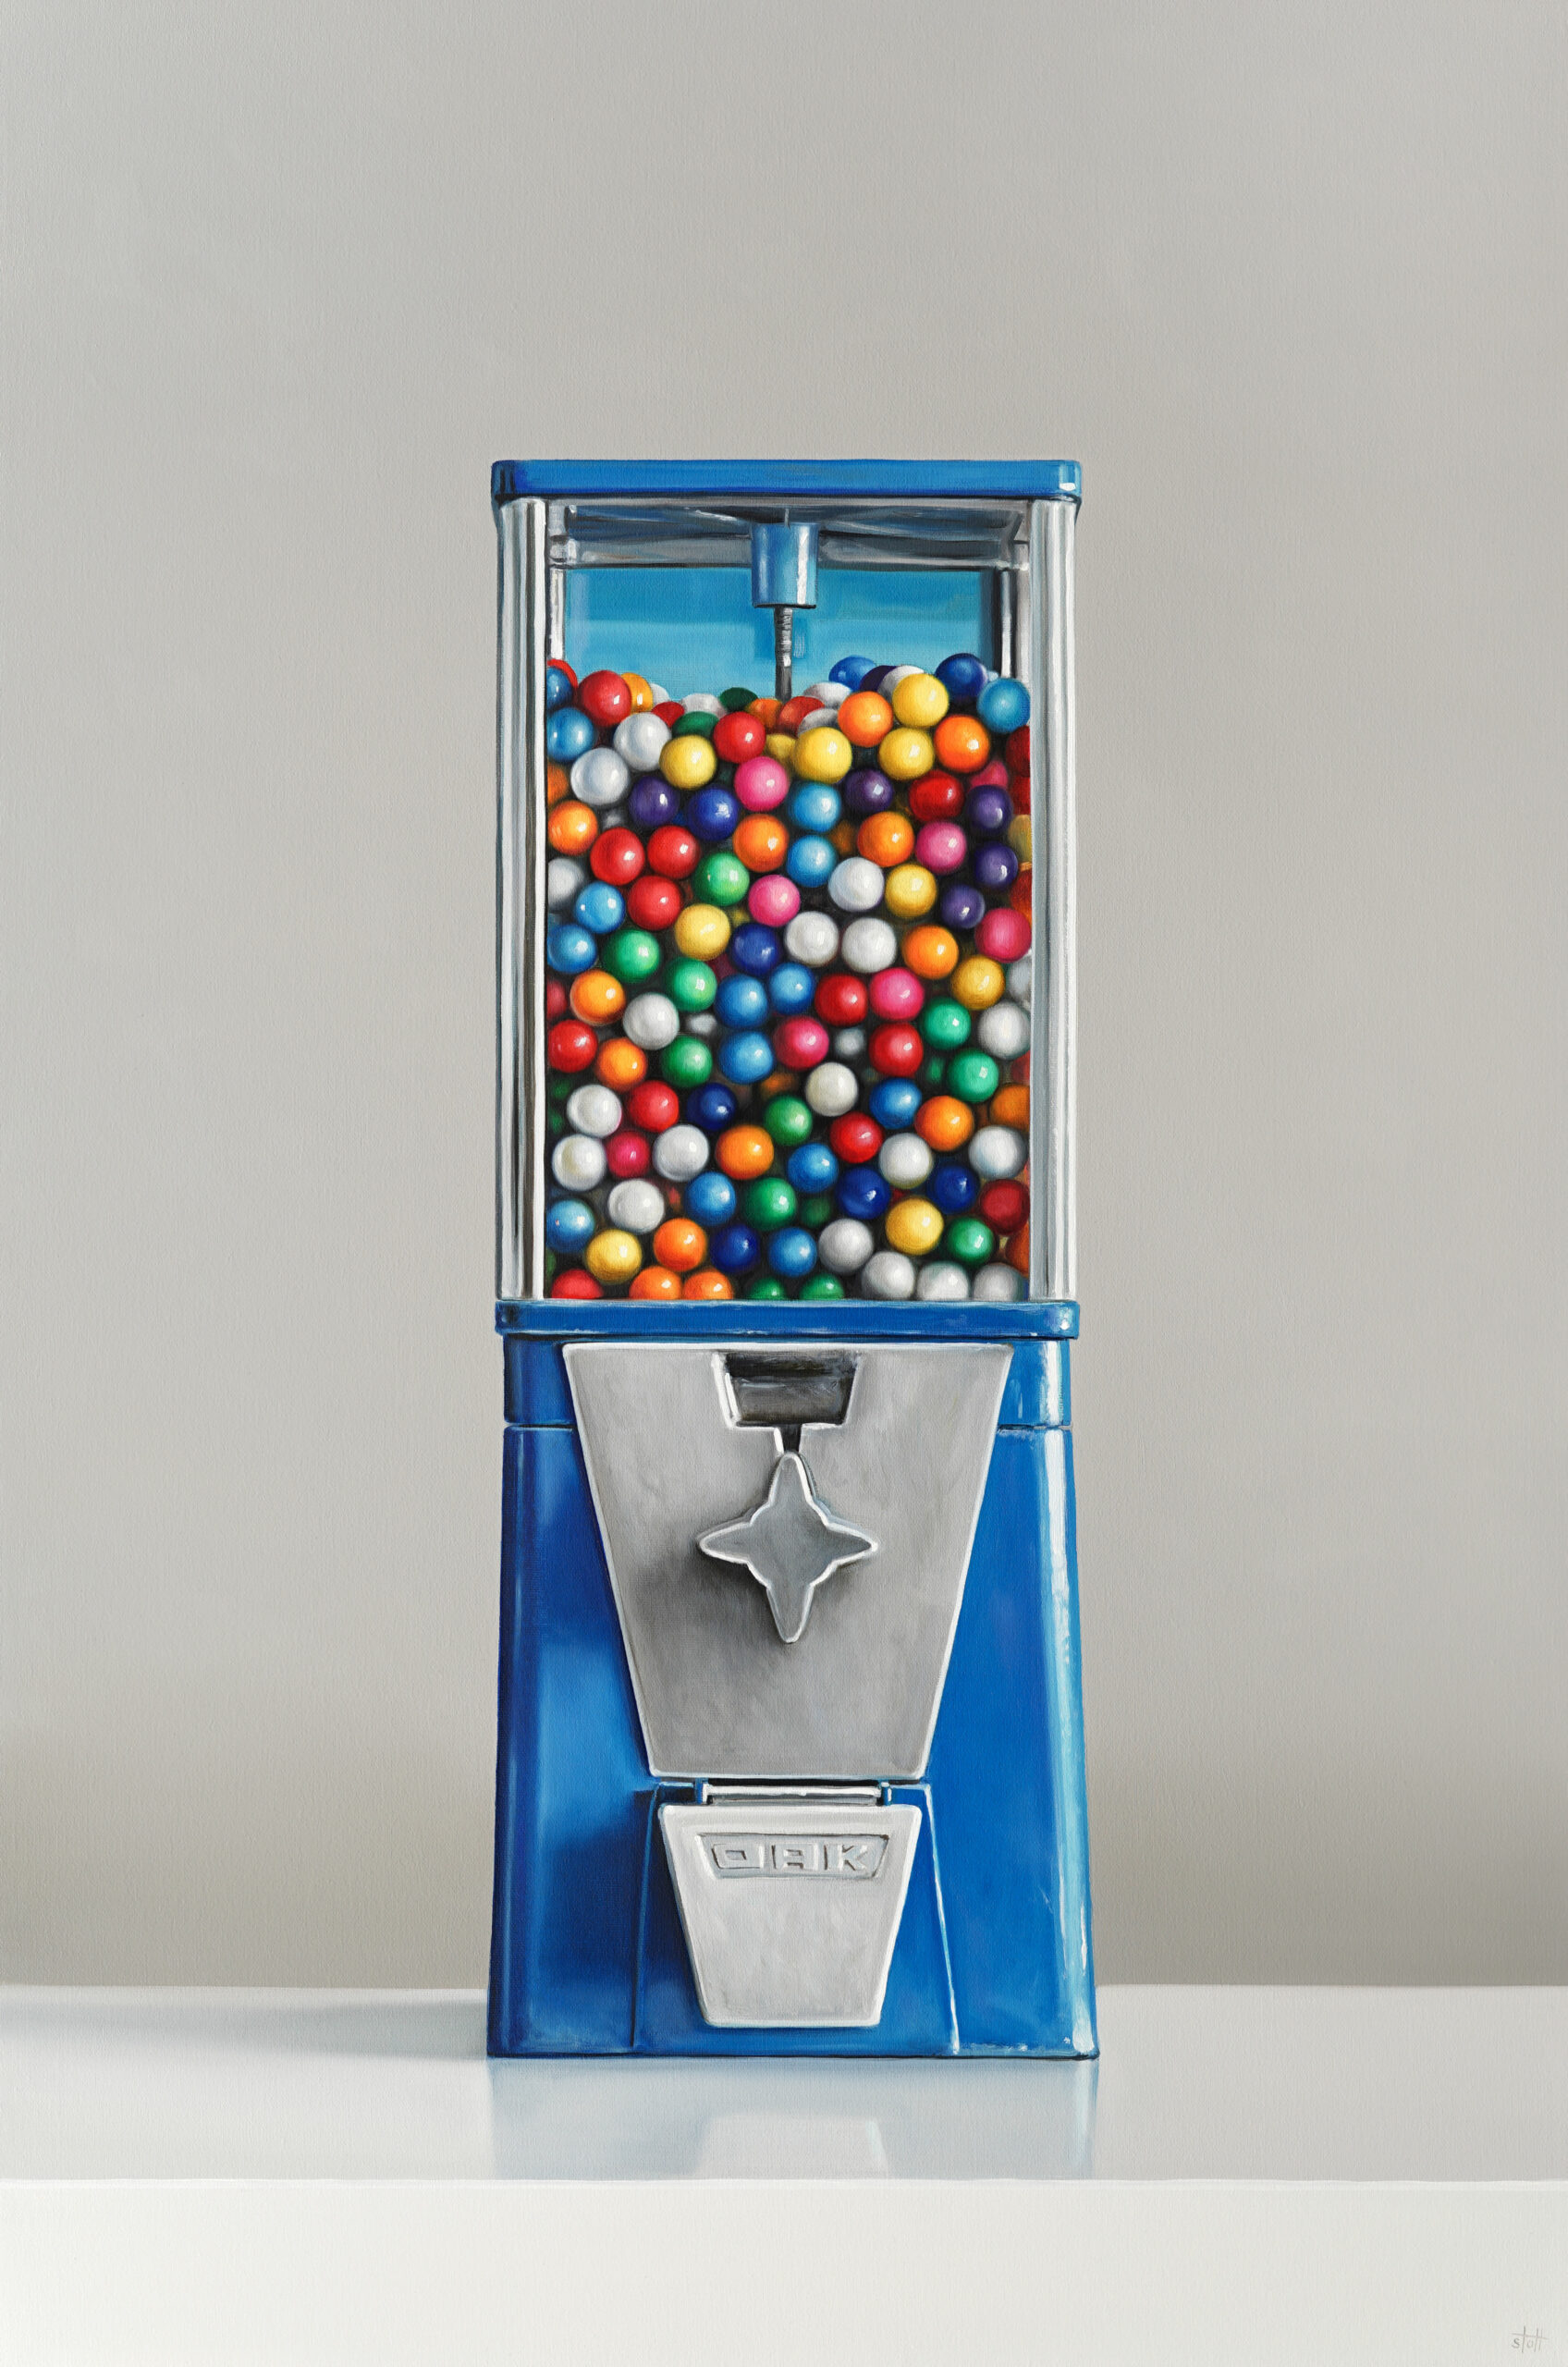 Oak Gumball Machine painting by Christopher Stott